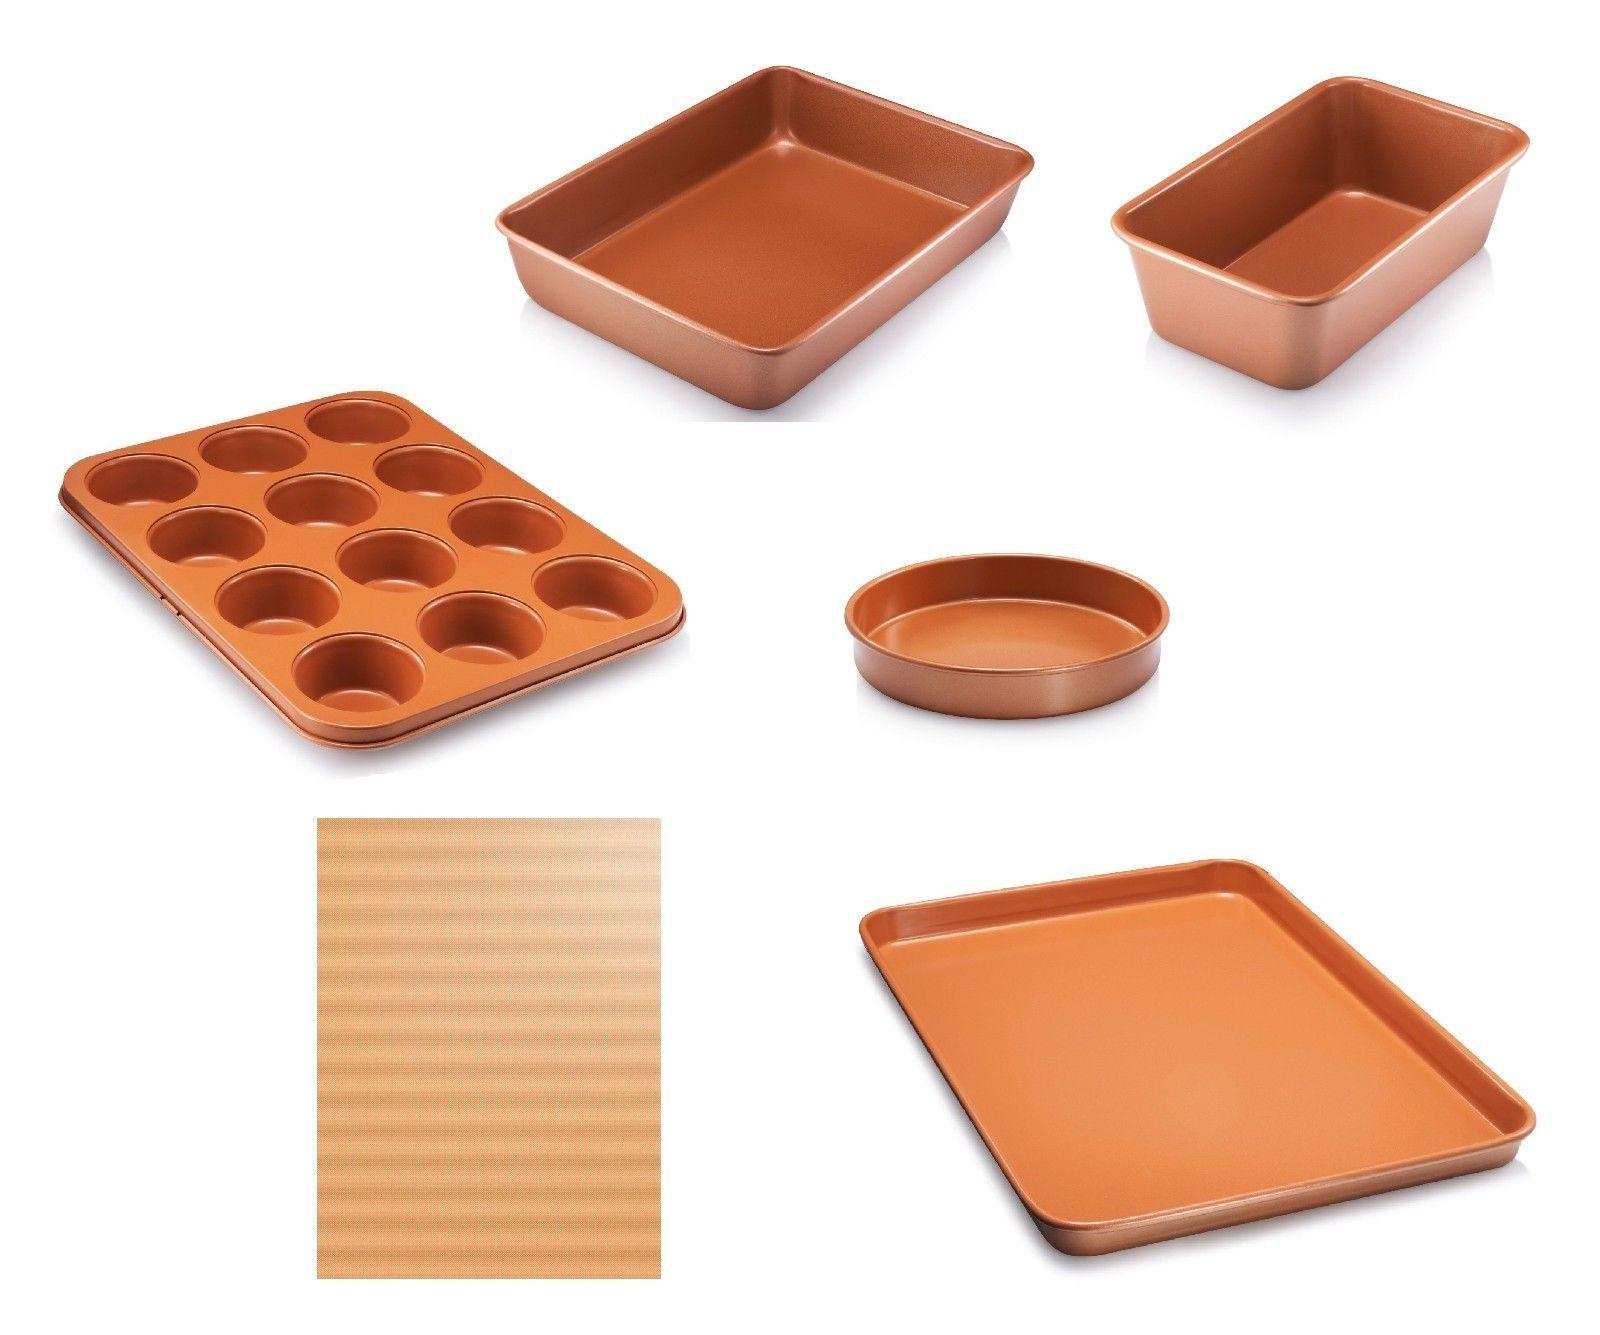 Copper Nonstick Bakeware Baking Loaf Muffin Cake Pan Cookie